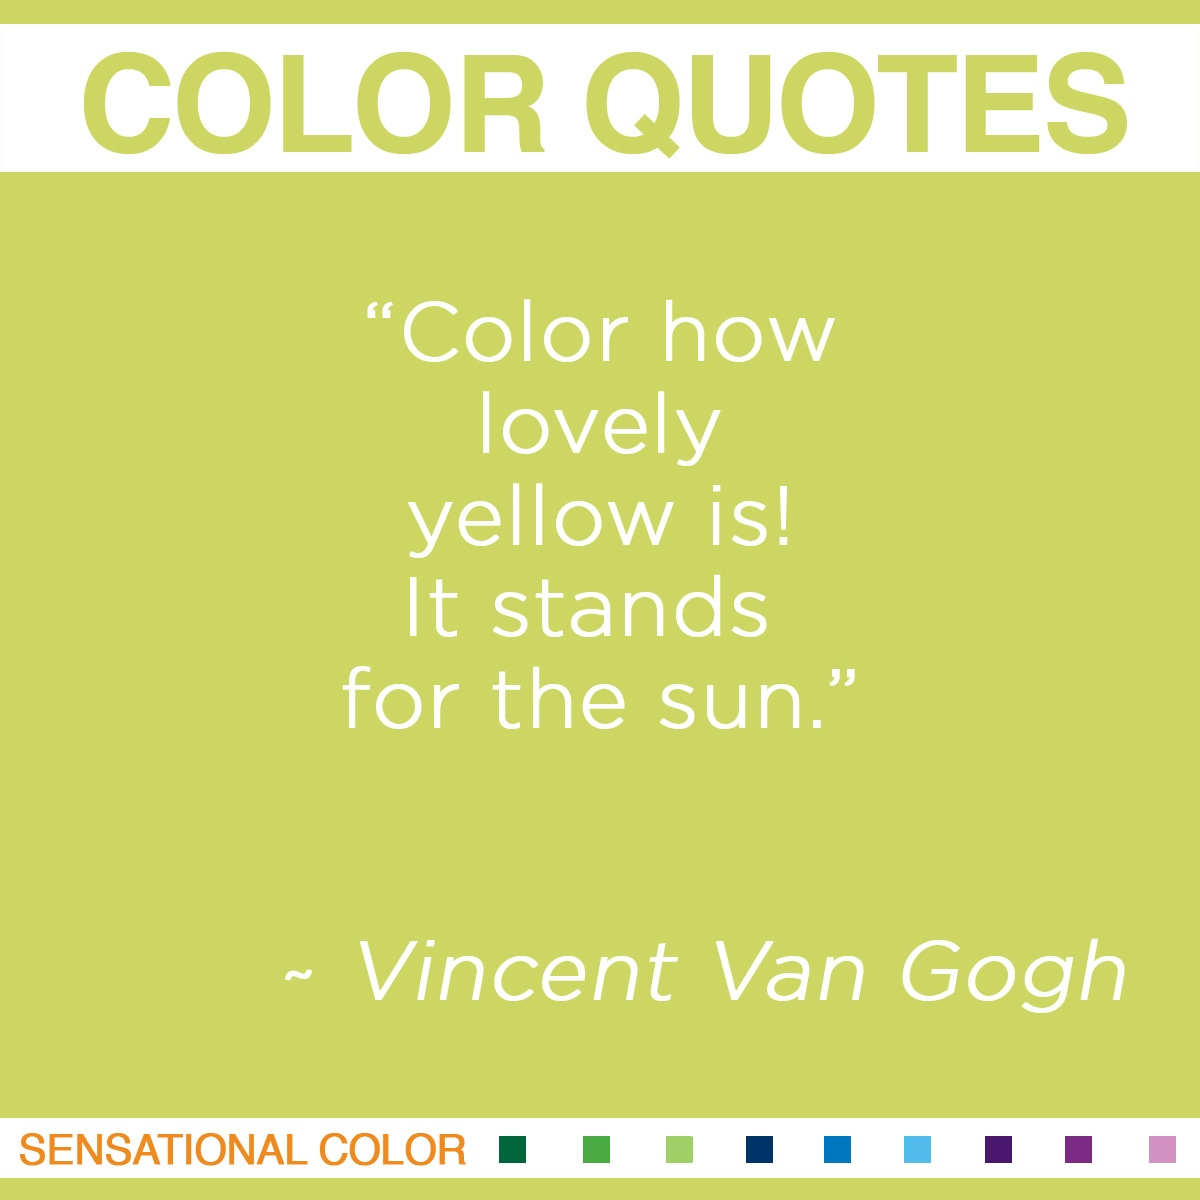 """How lovely yellow is! It stands for the sun."" - Vincent Van Gogh"